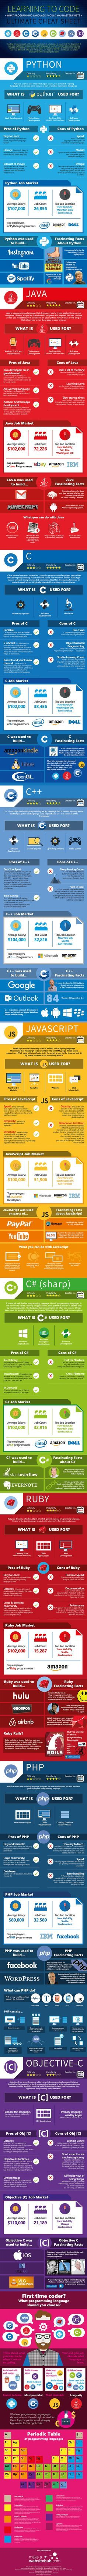 Should You Learn Python, C, or Ruby to Be a Top Coder? (Infographic)